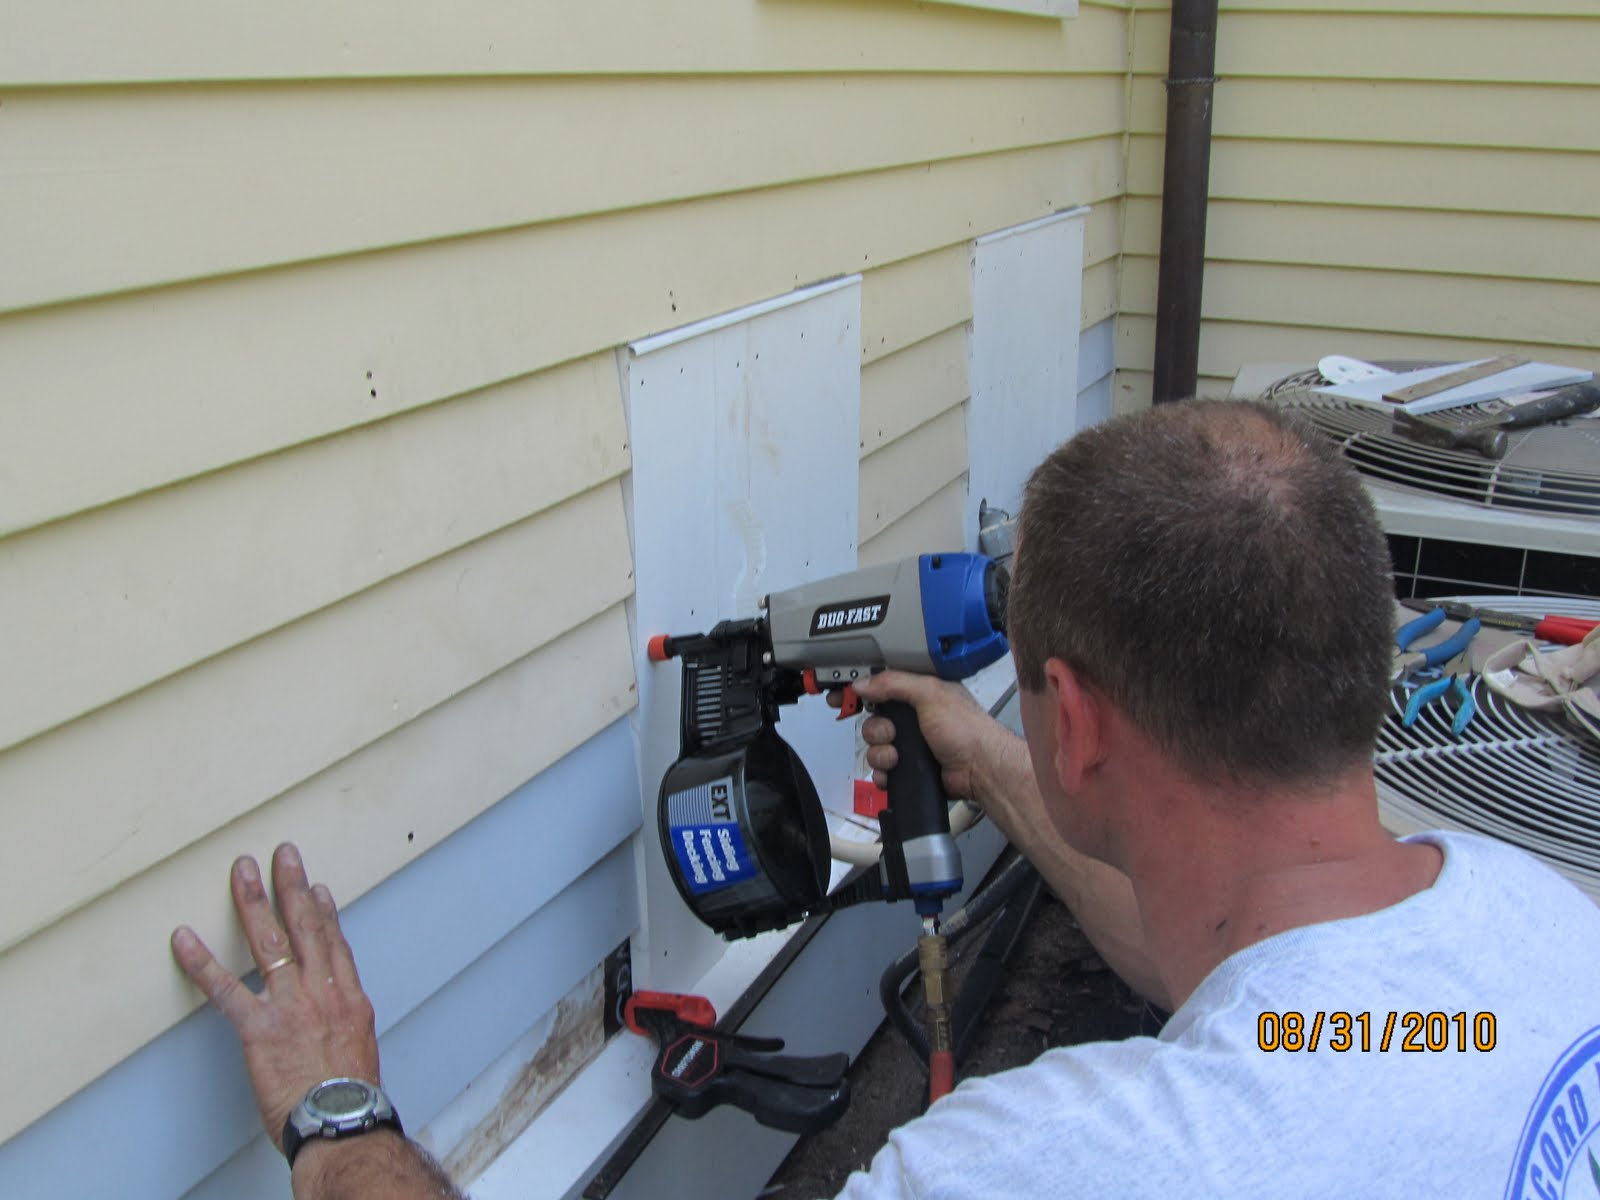 Installing A Tv Mount On Siding Tigerdroppings Com